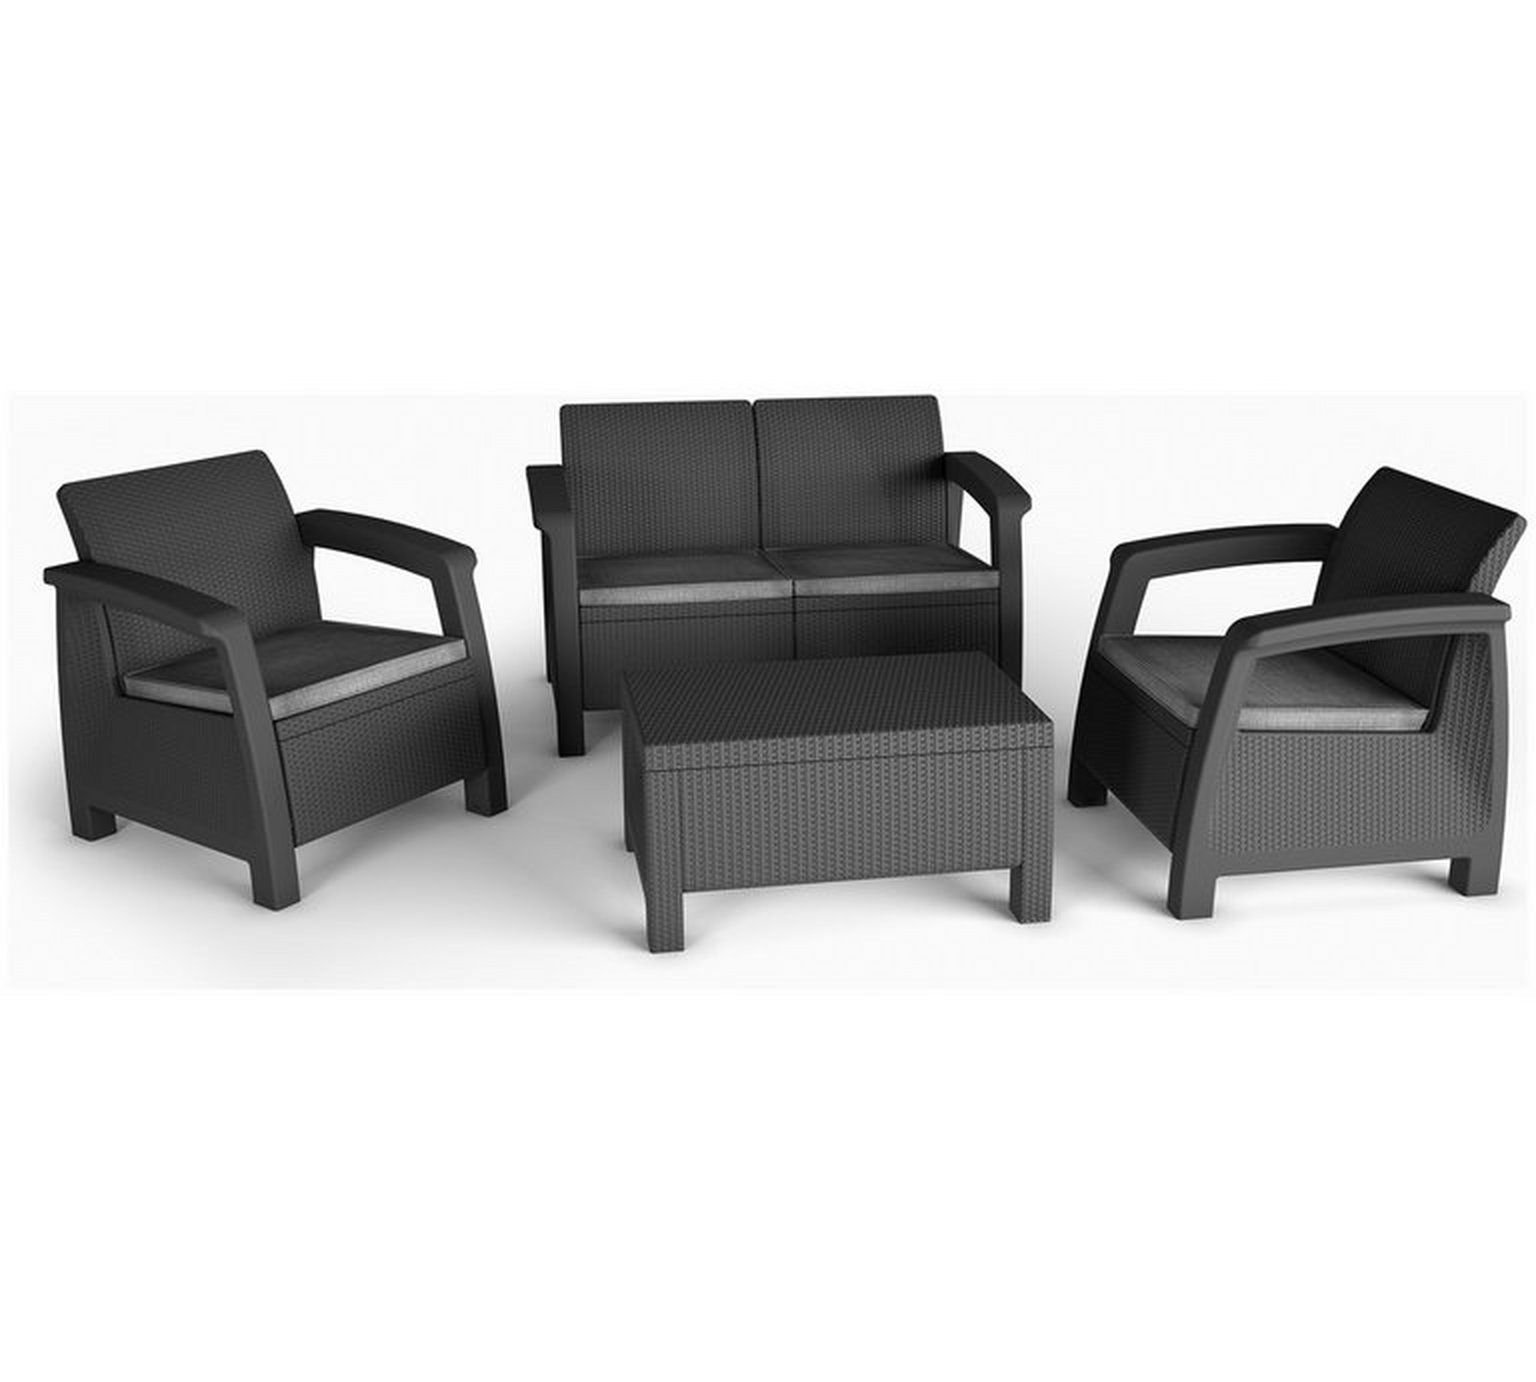 Buy Keter Bahamas Rattan 4 Seater Garden Lounge Set Graphite At Argos Co Uk Your Online Shop For G Garden Table And Chairs Outdoor Furniture Sets Furniture